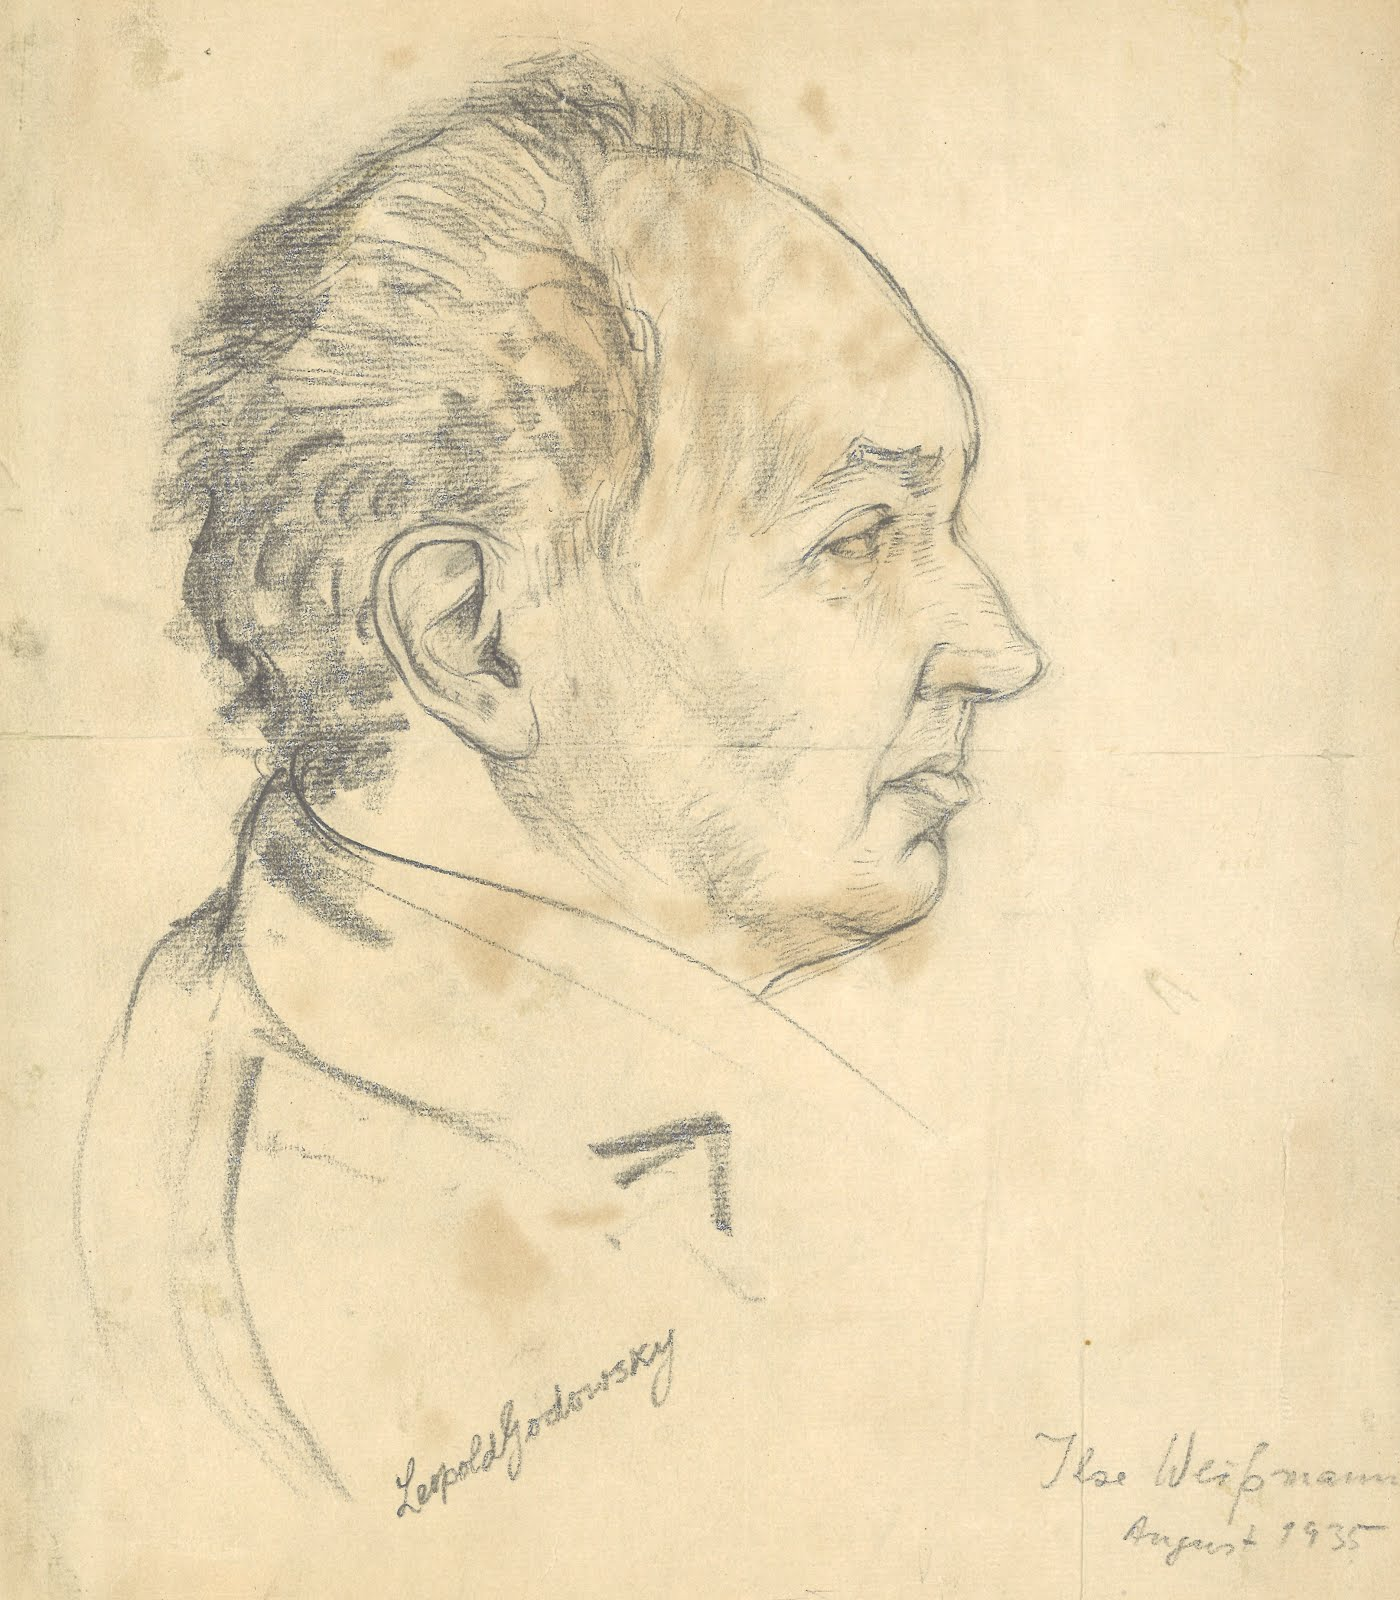 Autographed original illustration of Pianist Leopold Godowsky